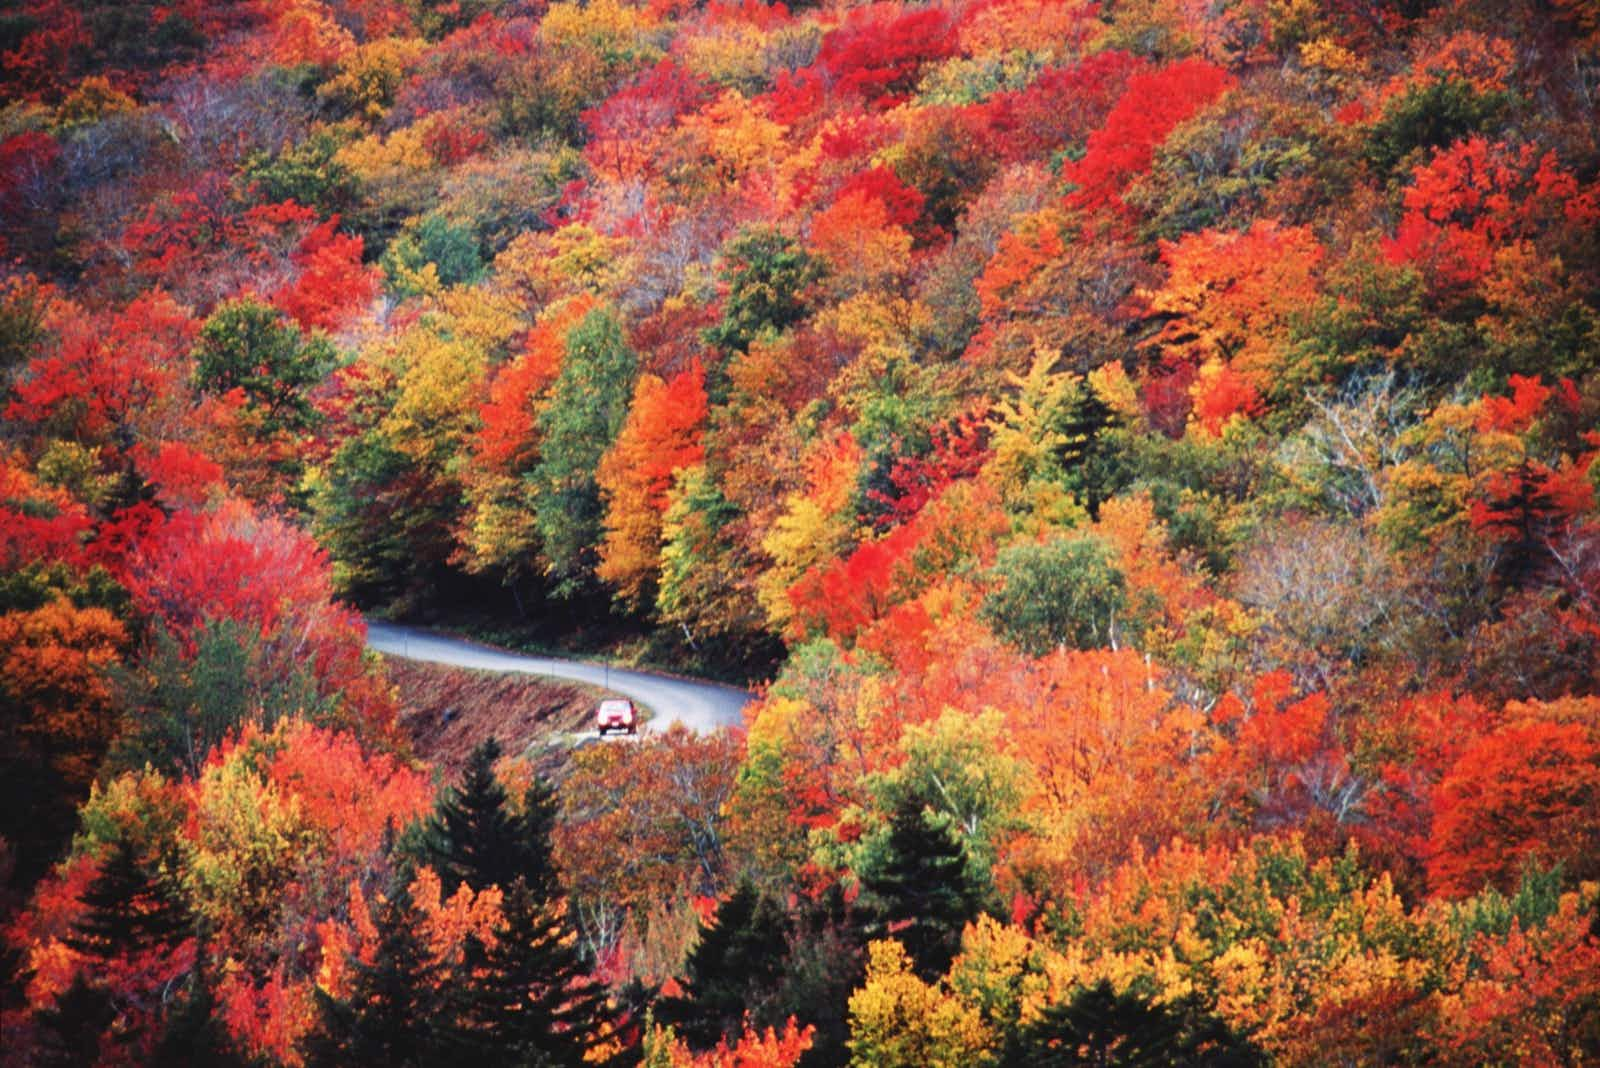 A car drives on a windy road that you can barely see because of the dense orange, red, yellow and green foliage while listening to an audiobook on a US roadtrip